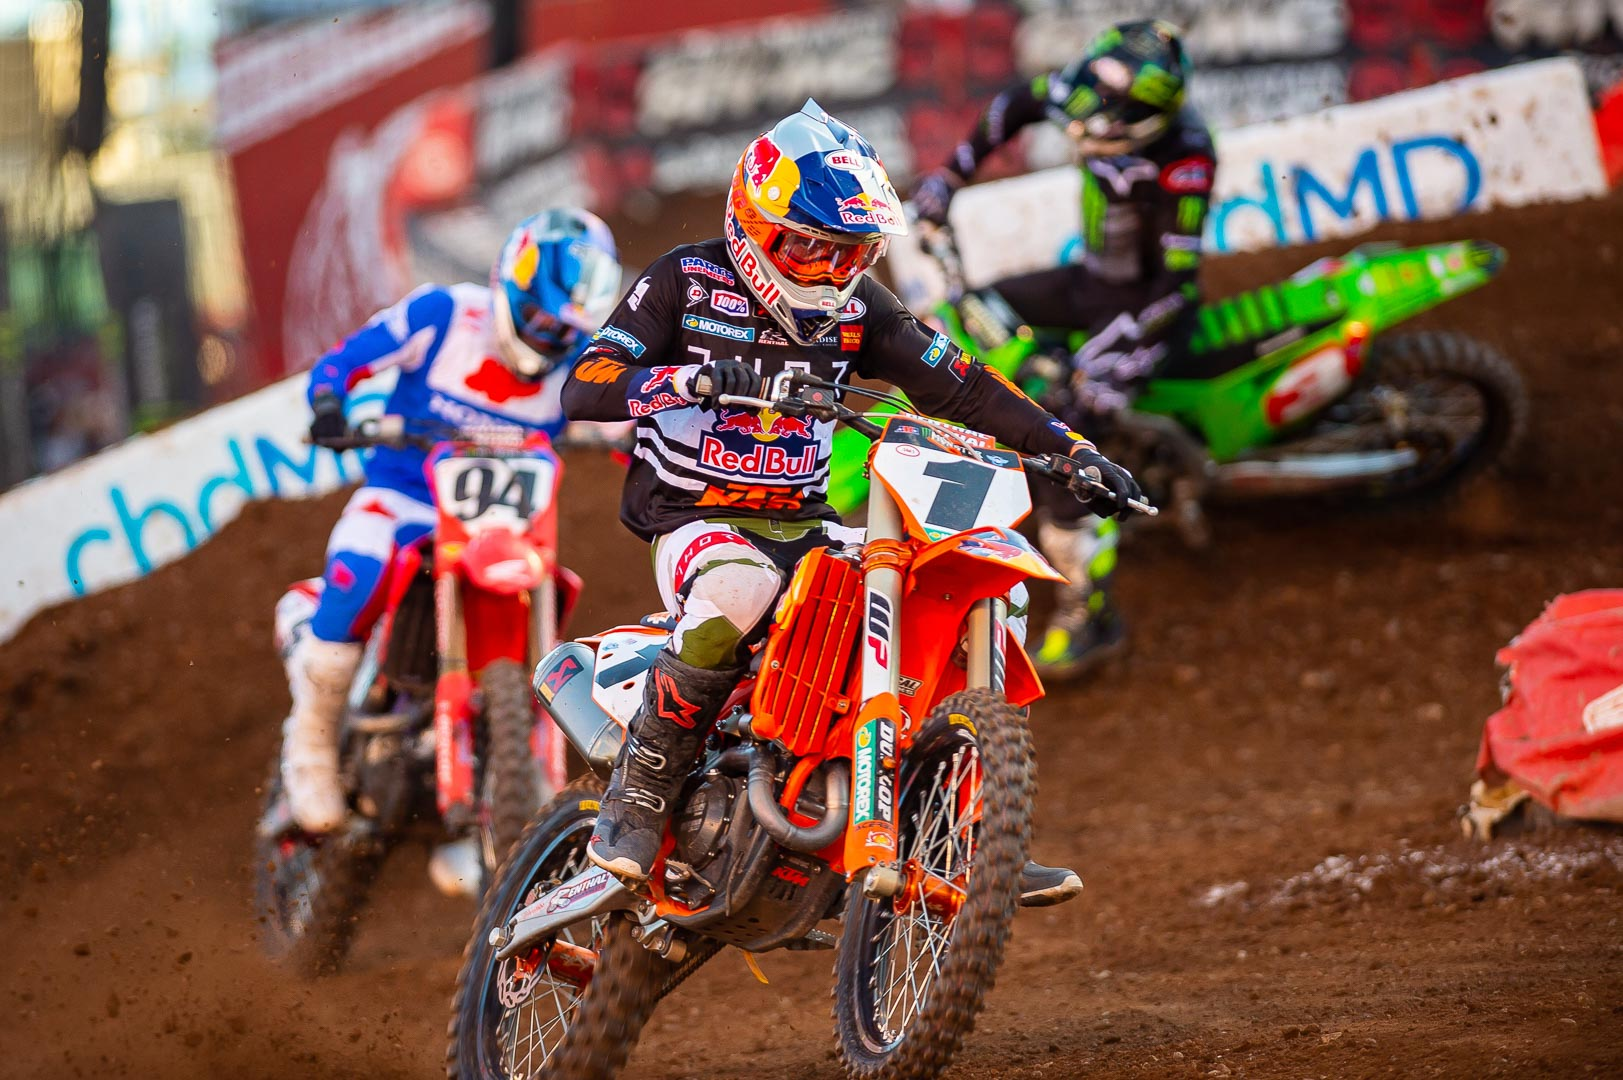 2021 Supercross Television Schedule